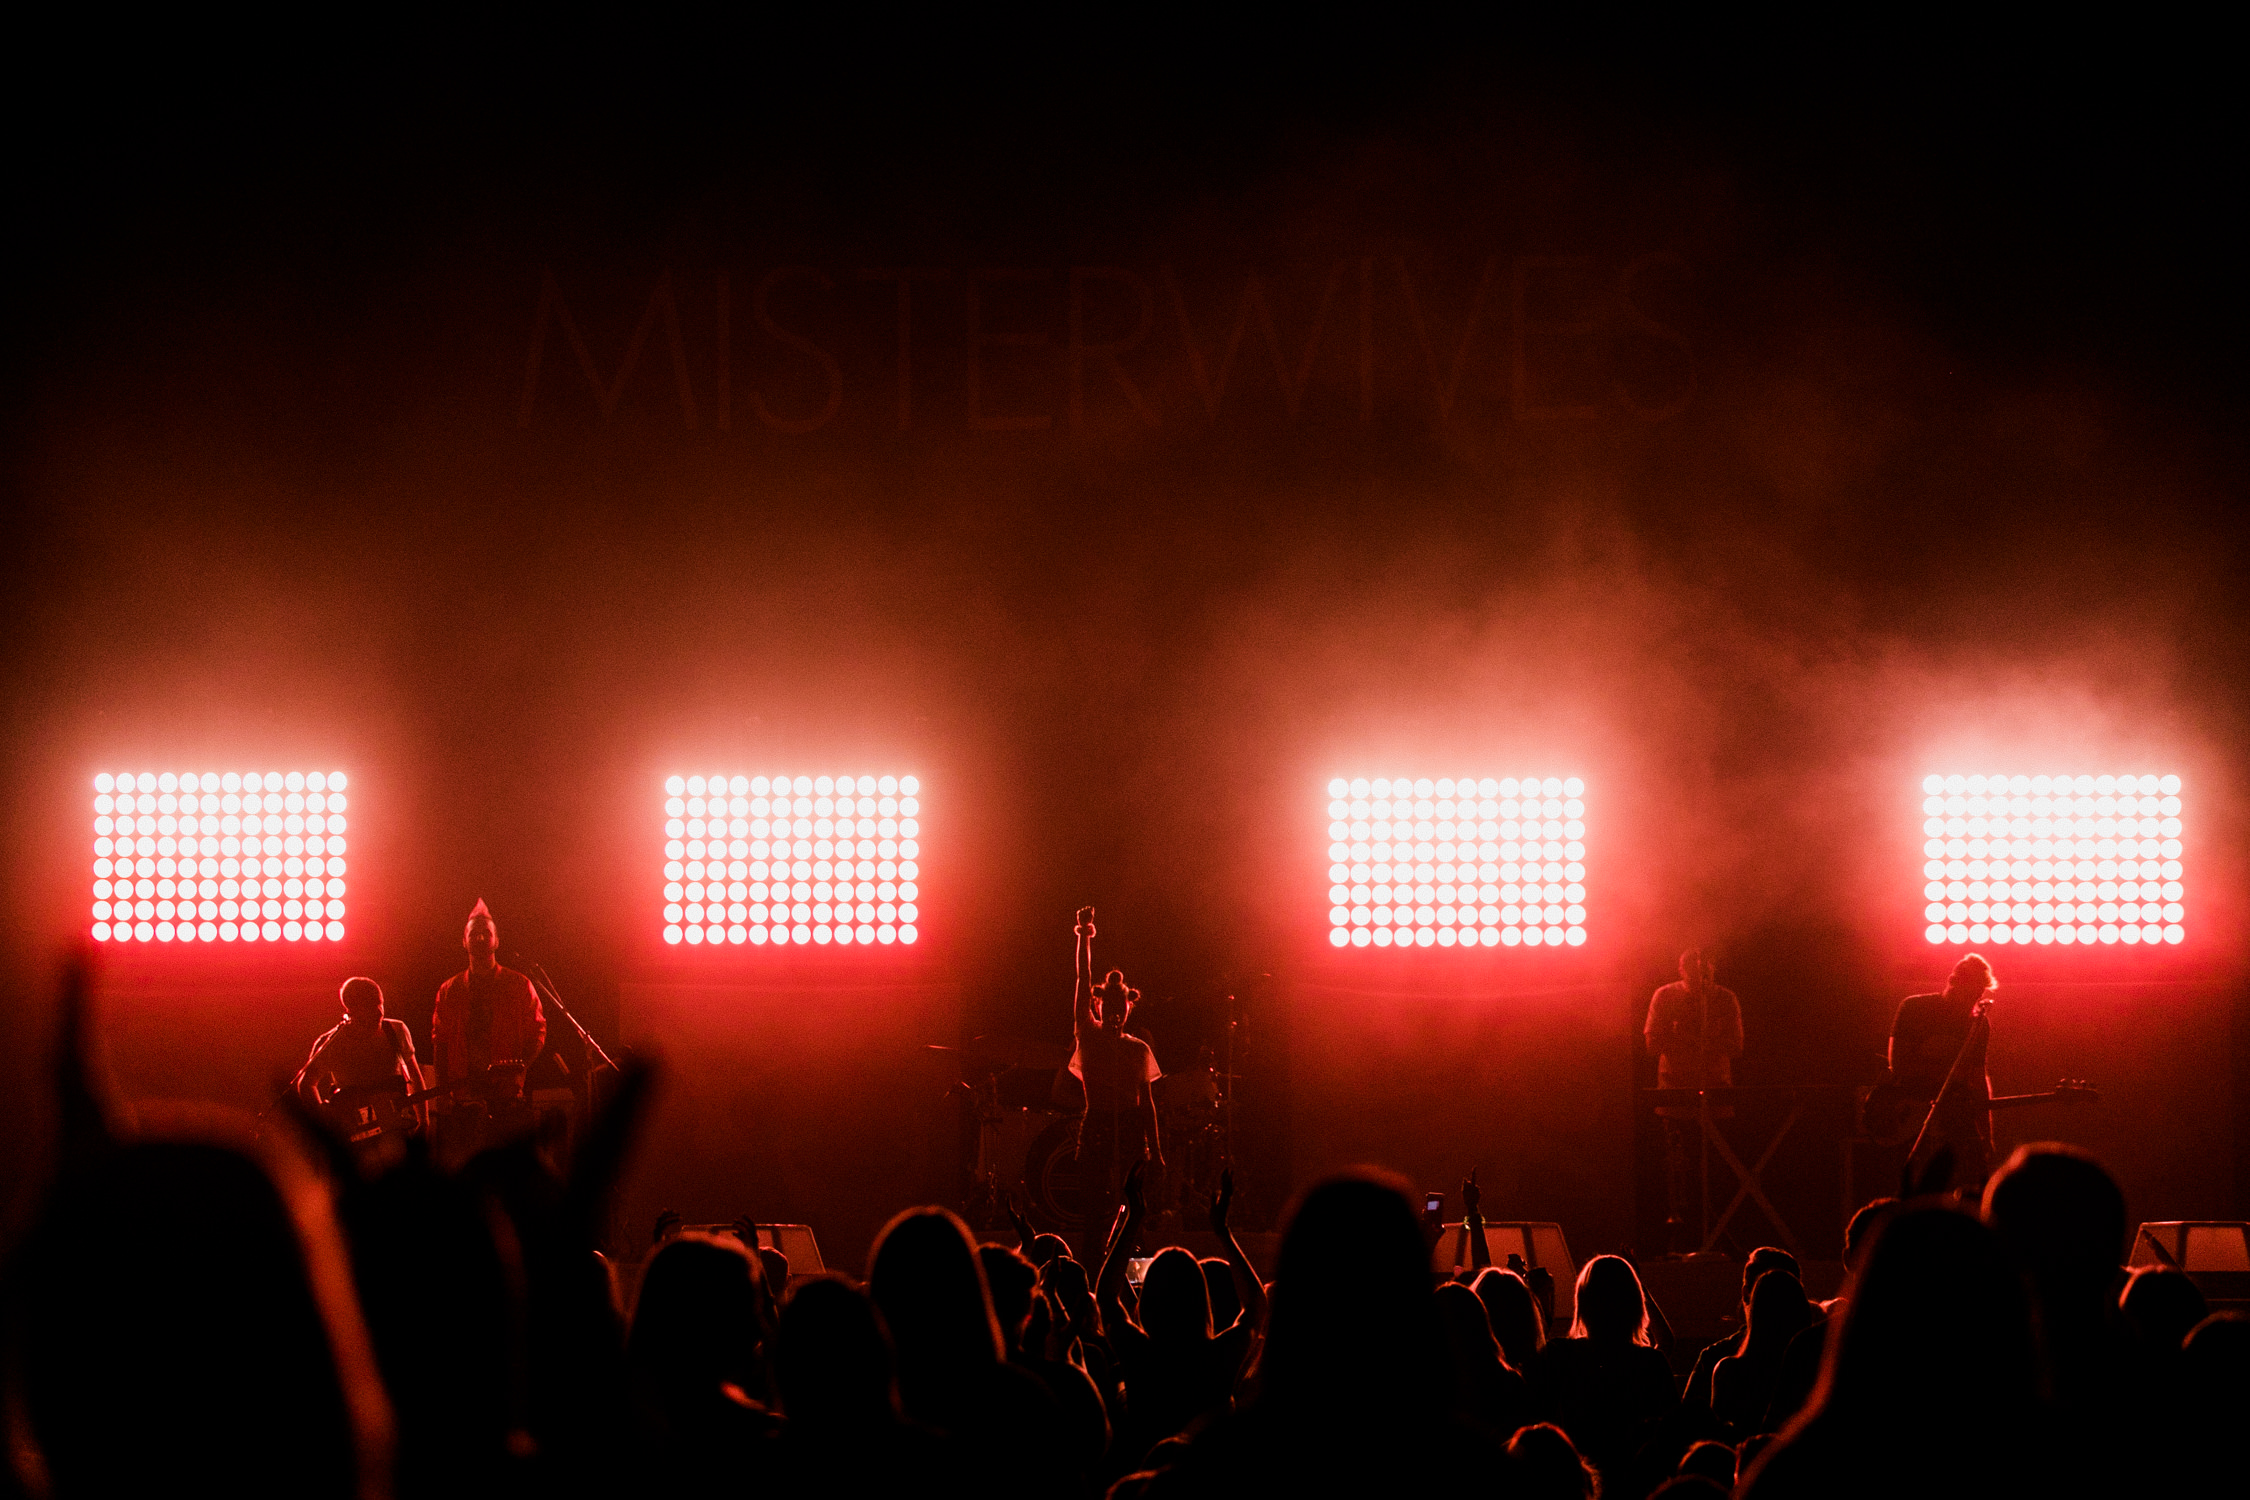 misterwives-red-silhouette-concert-arena-tour-crowd-AnnaLeeMedia